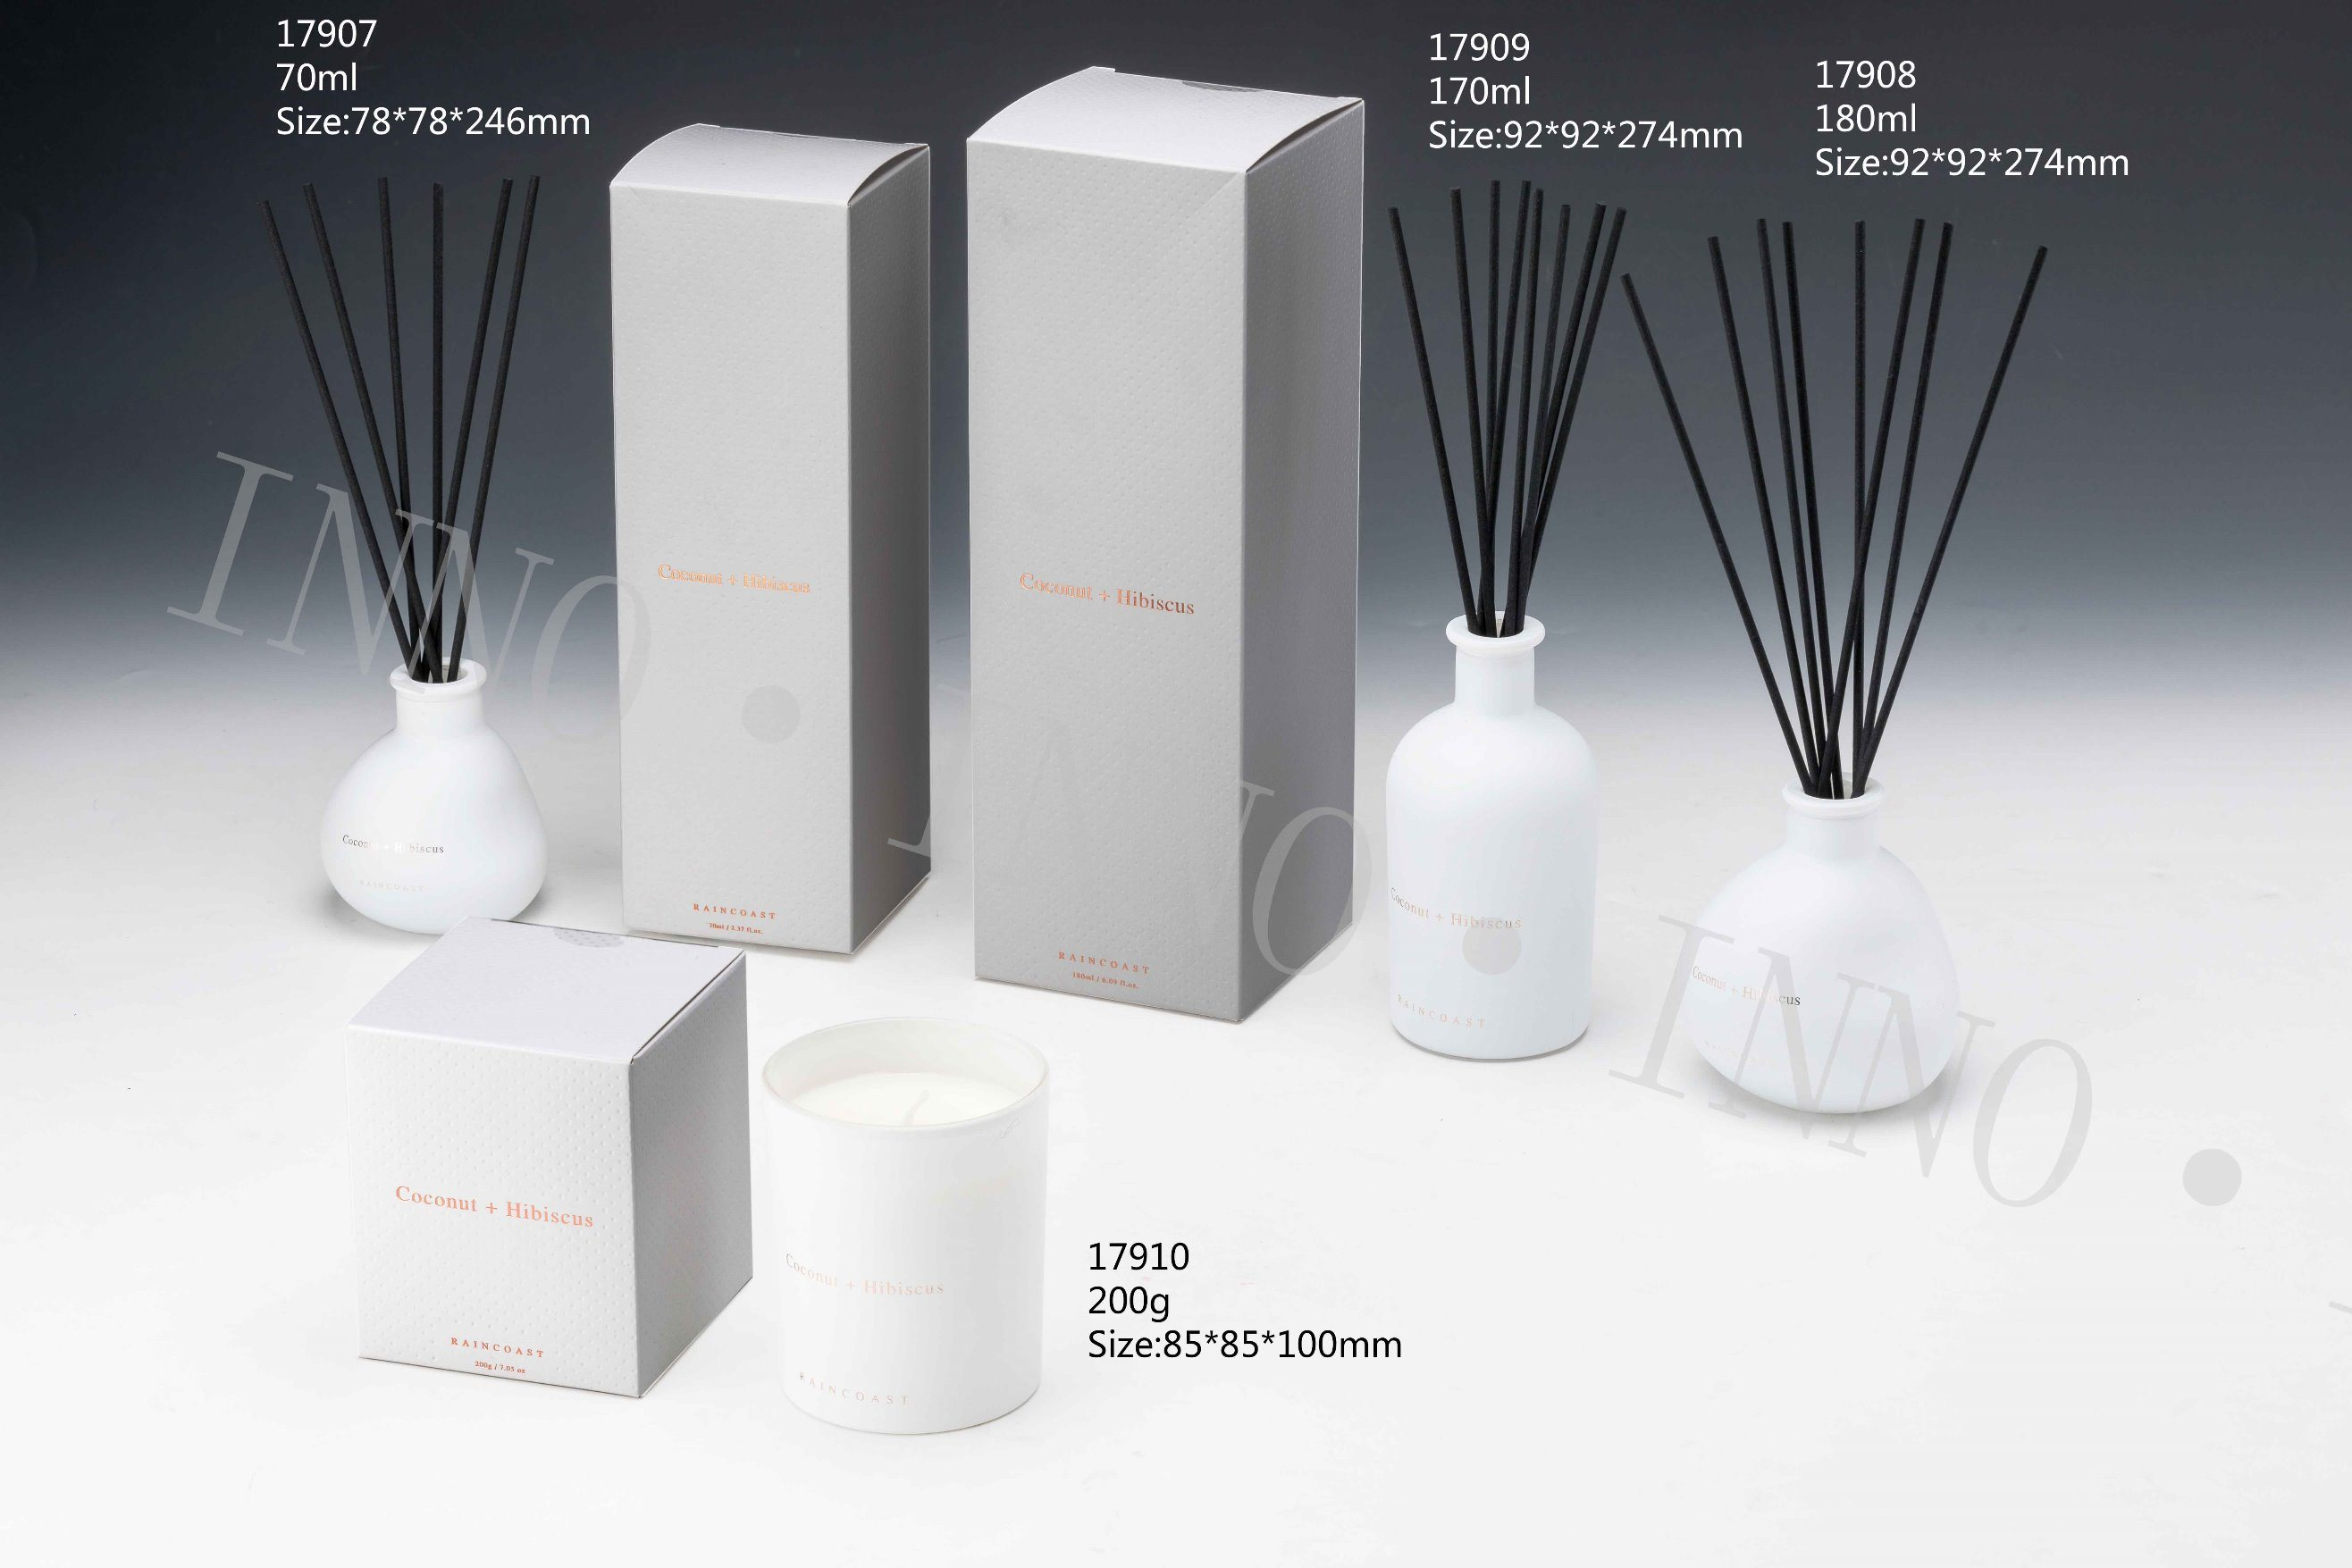 China 150ml Diffuser Aroma Bottle With Irregular And Elegance Design For Room Diffuser Fragrance For Hotel Reed Diffuser Packaging Box China Artificial Flower And Home Fragrance Price